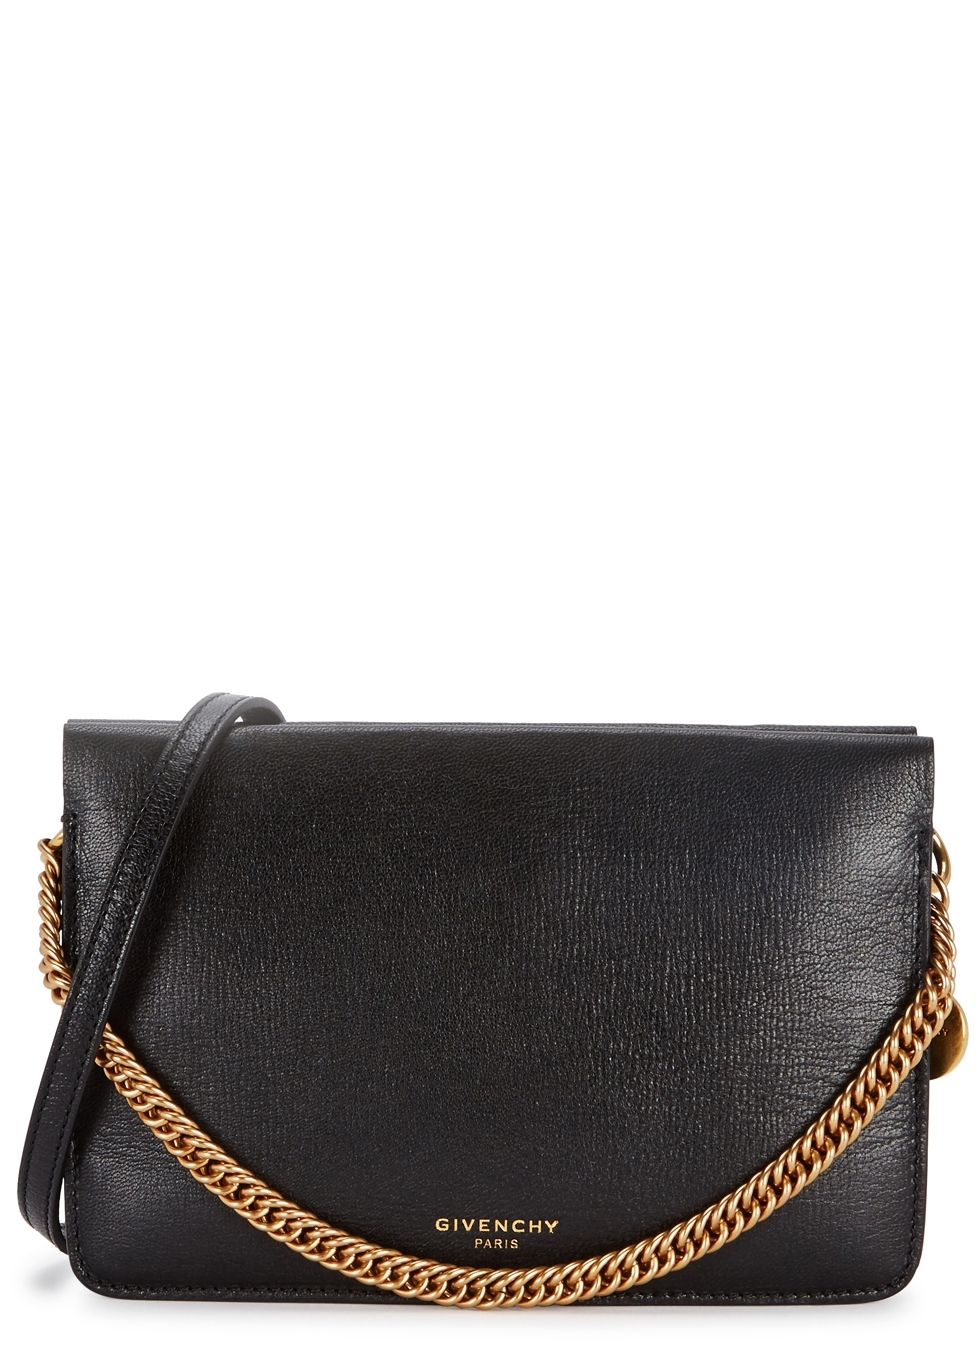 Givenchy grained Cross3 bag Cheap Perfect 3qx22Zb6